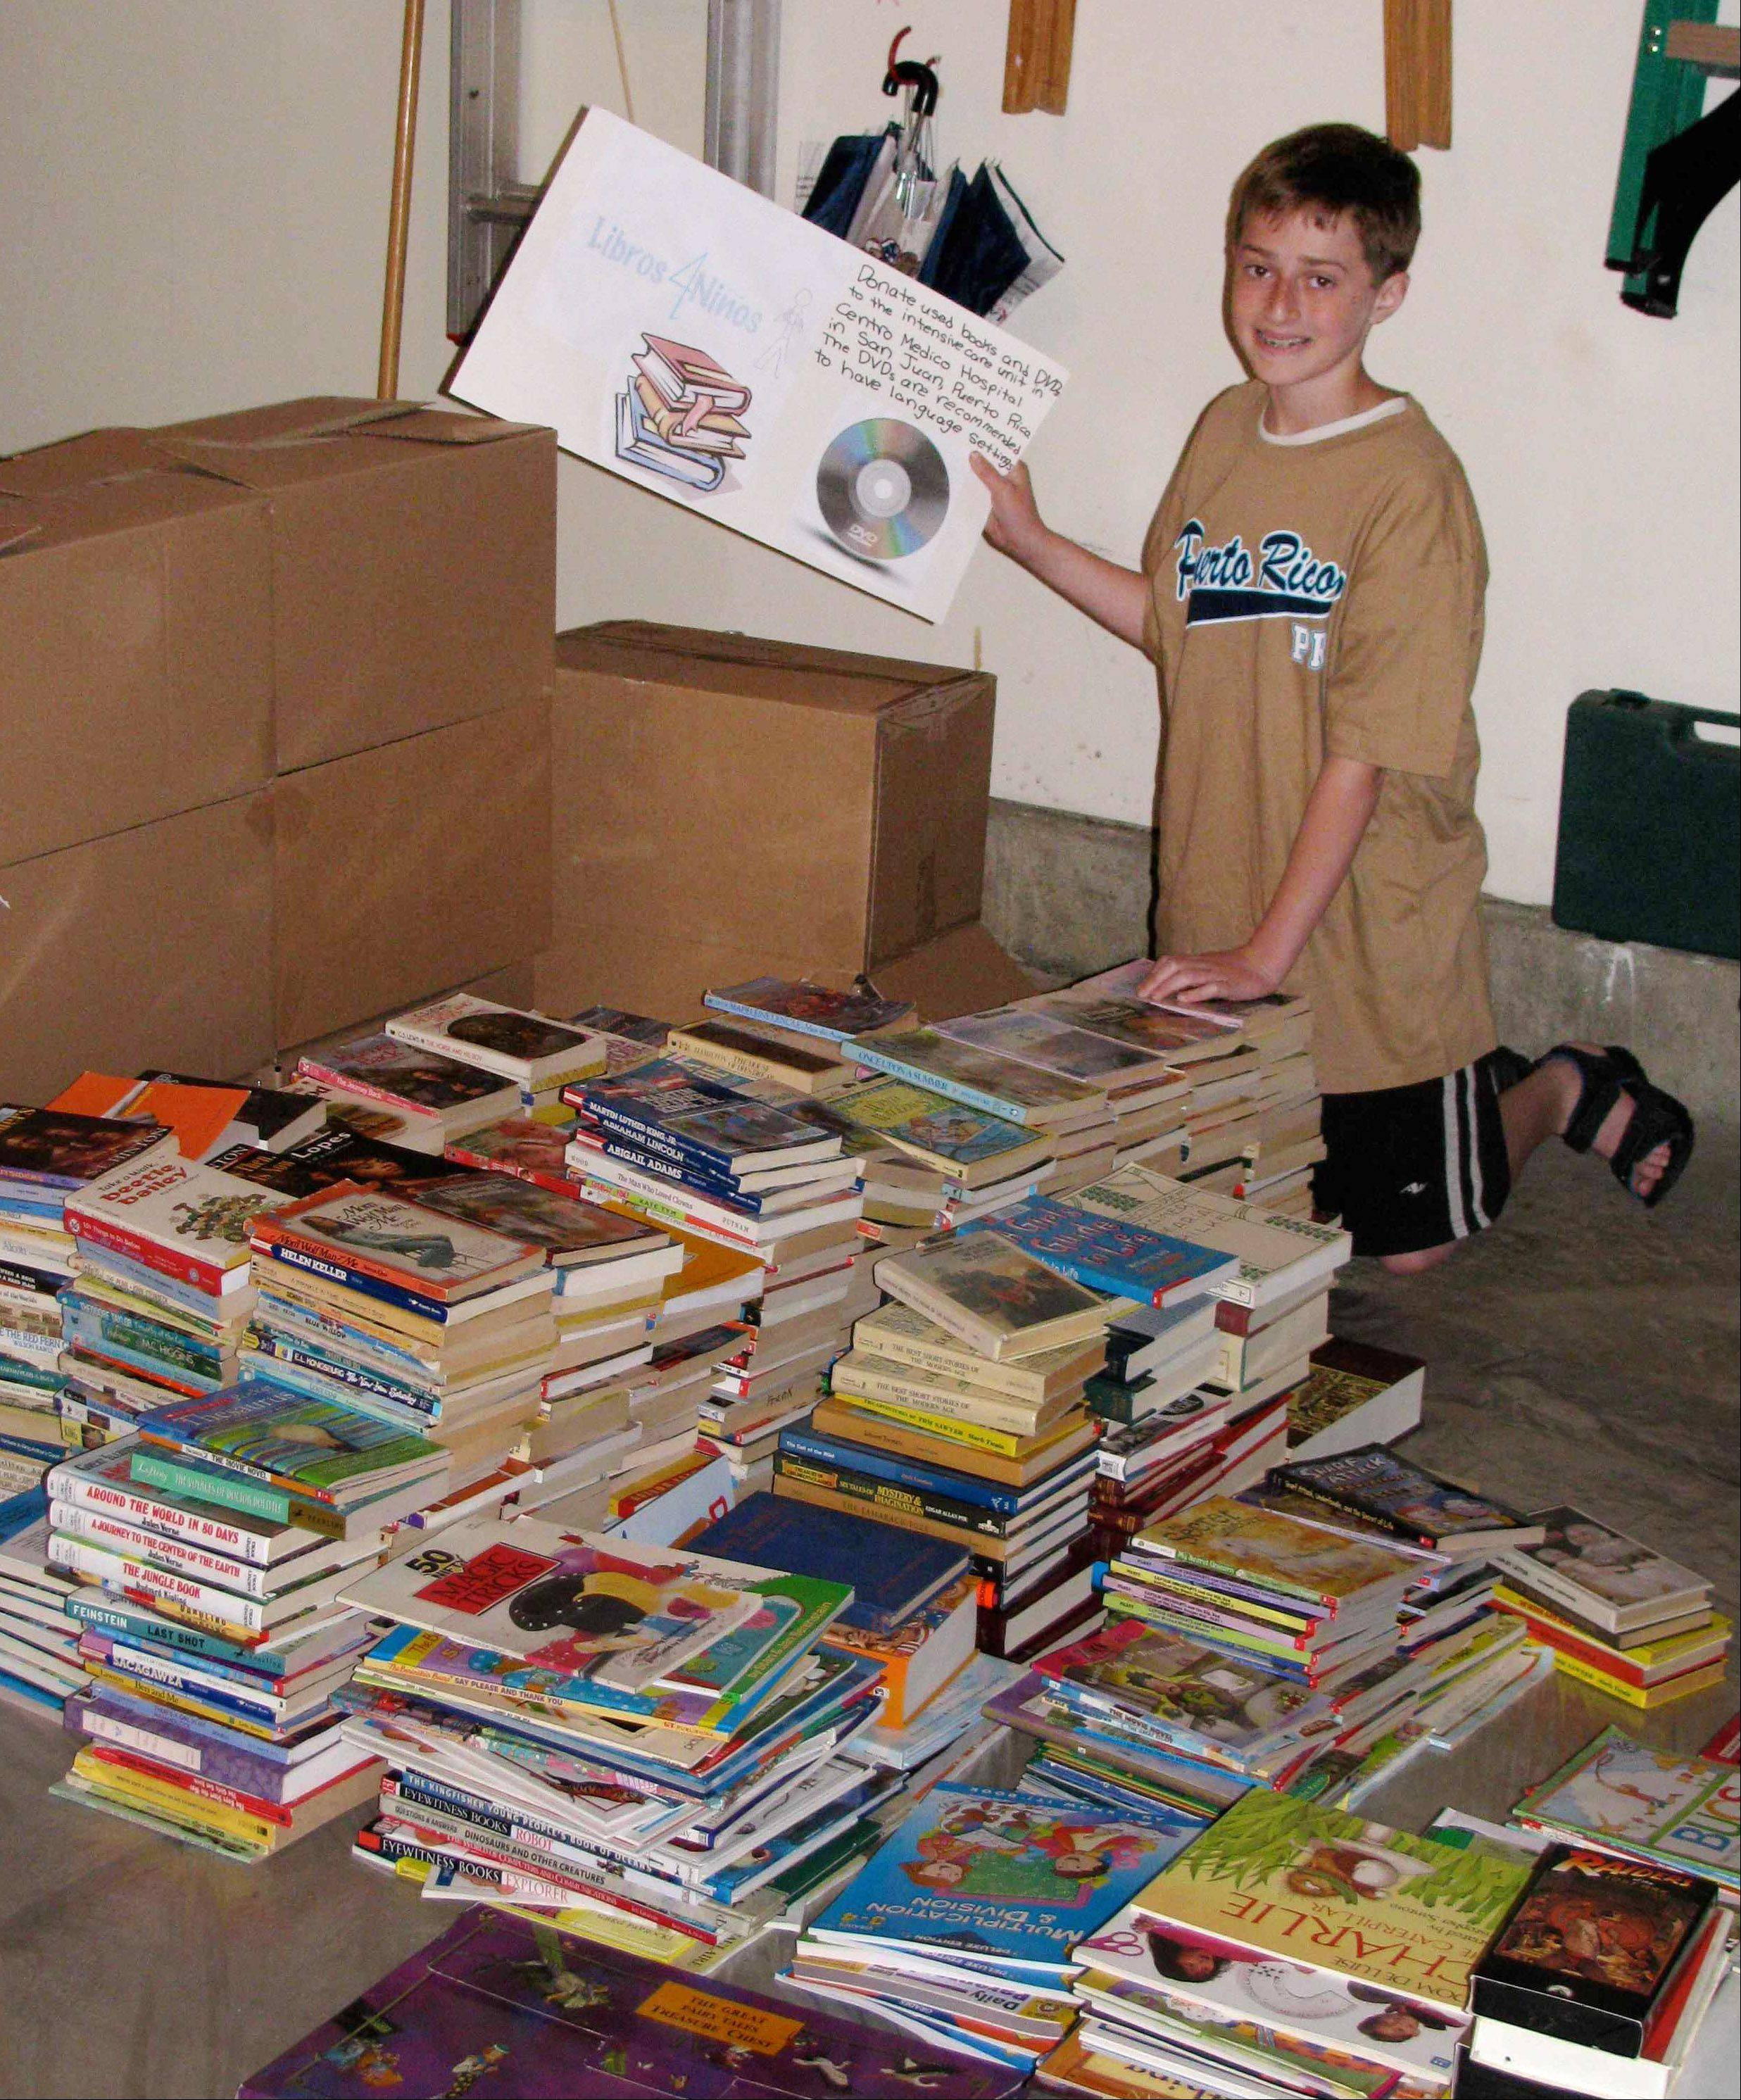 Stephen Cohn with some of the books he and classmates collected to donate to the hospital in Puerto Rico where he was treated for bleeding ulcers during spring break.